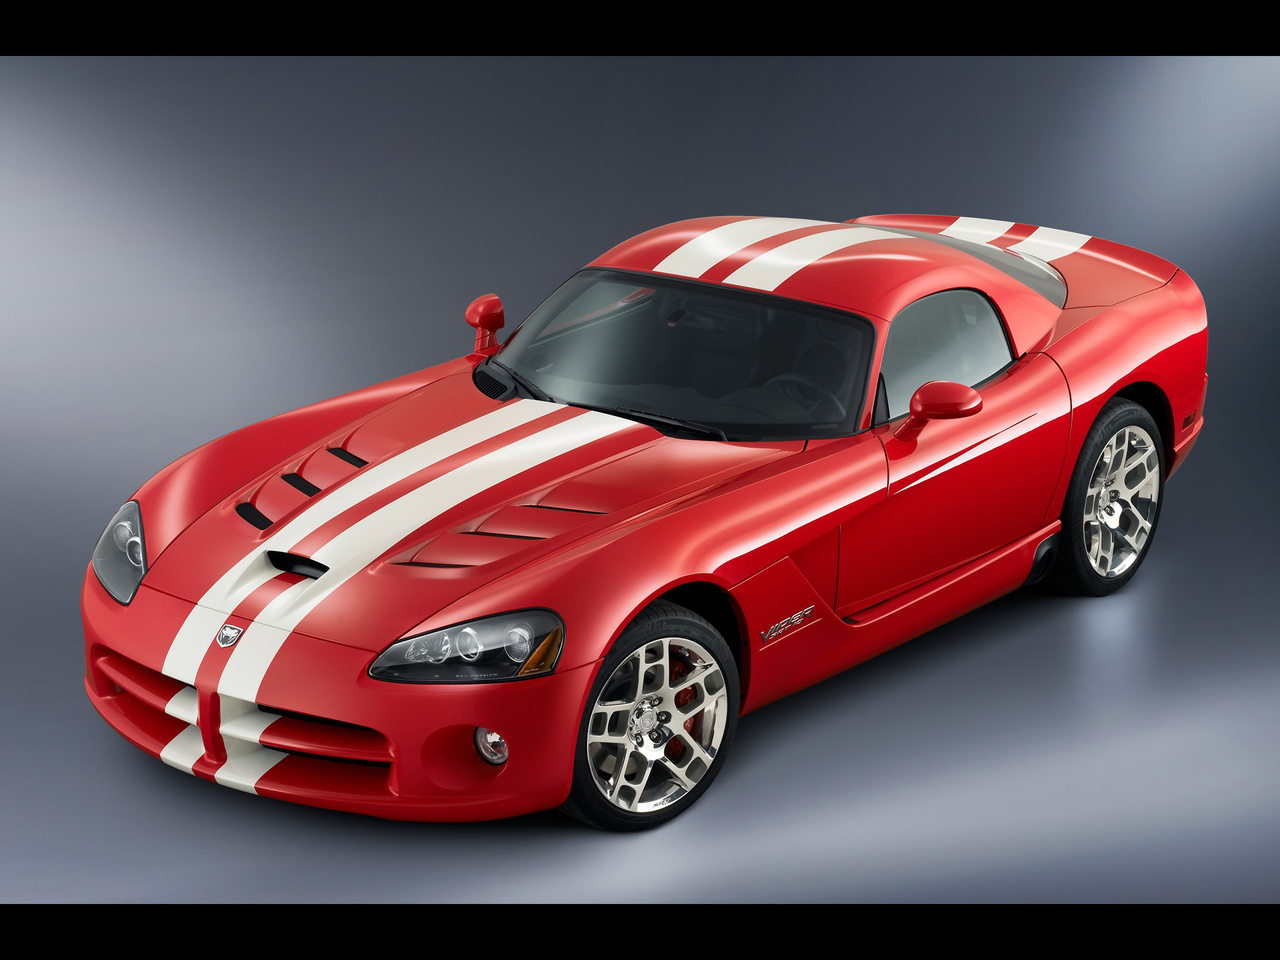 dodge viper srt10 coupe front High Resolution Image Wallpapers Download